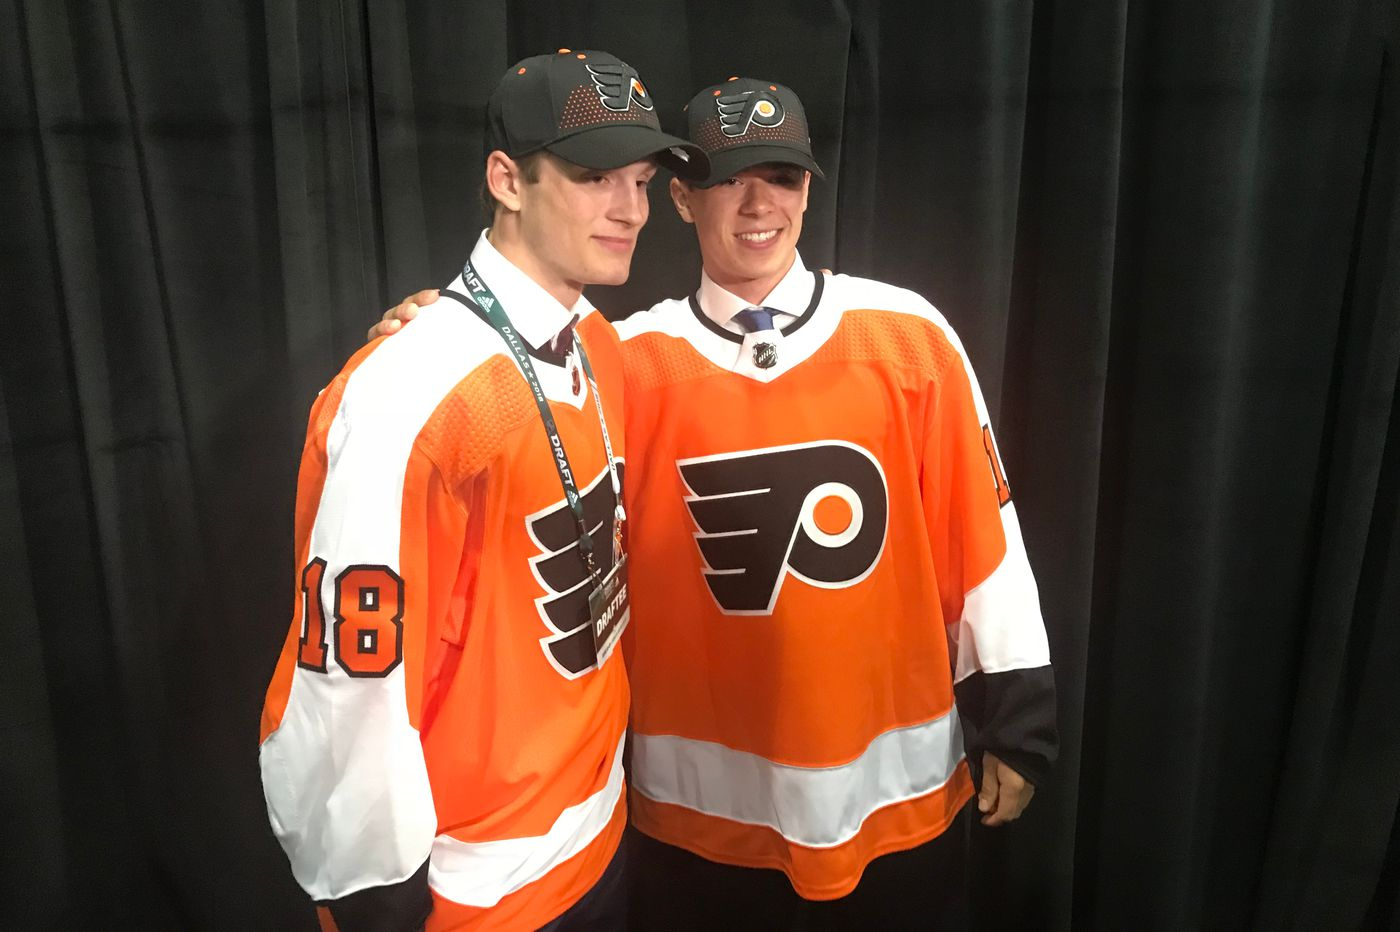 Flyers prospect Jay O'Brien leaving Providence, exploring other options after 'tough year'